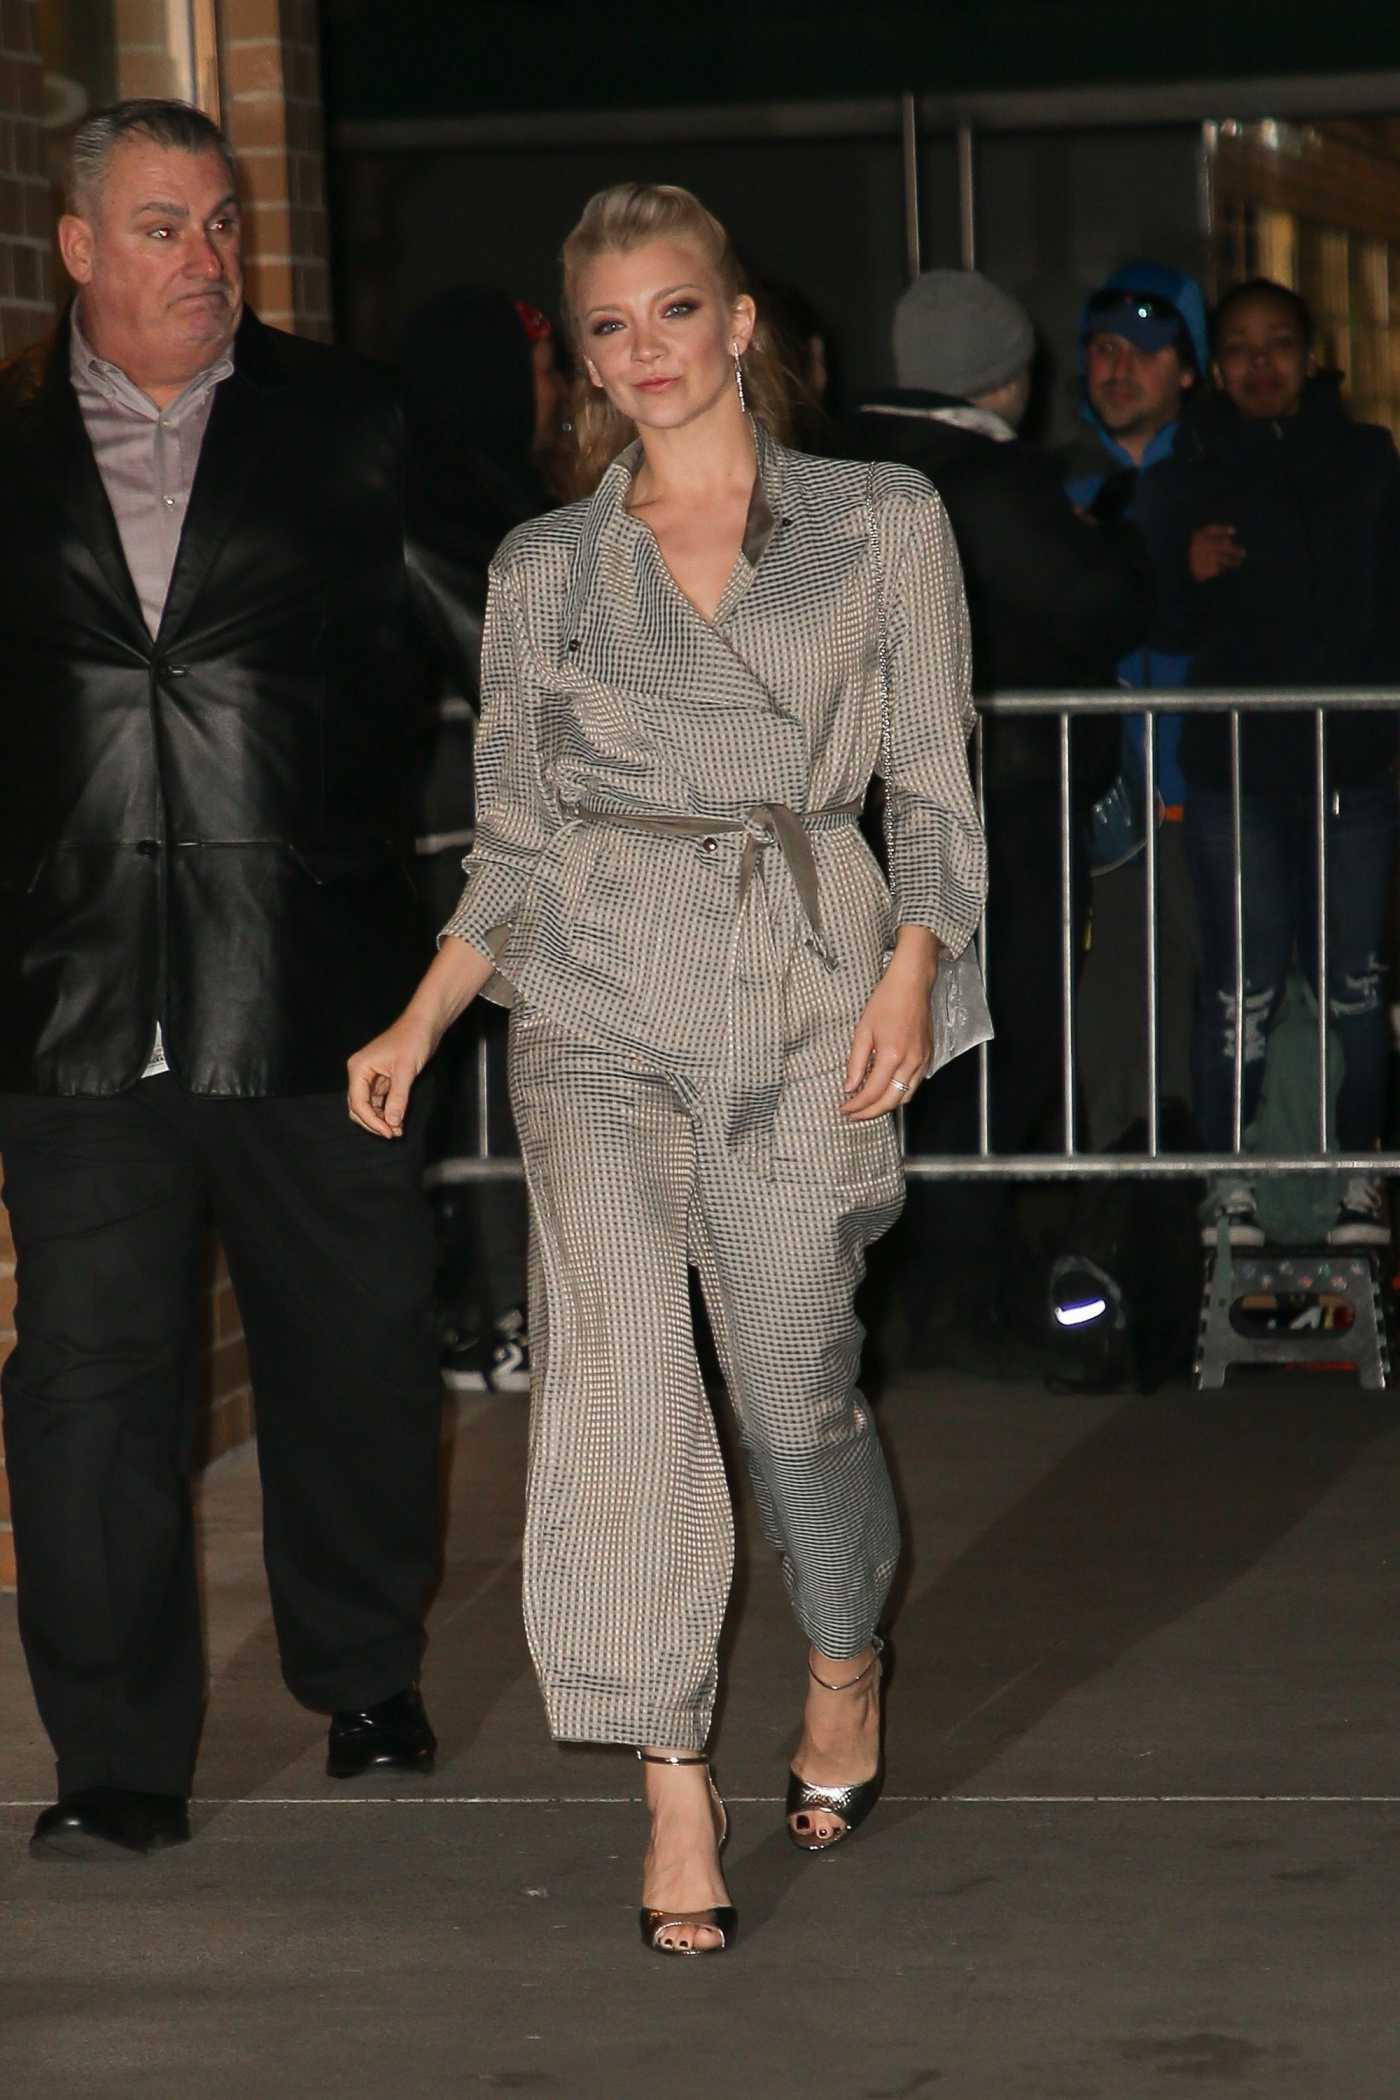 Natalie Dormer in a Silver Suit Arrives at Marea Restaurant in NYC 04/01/2019